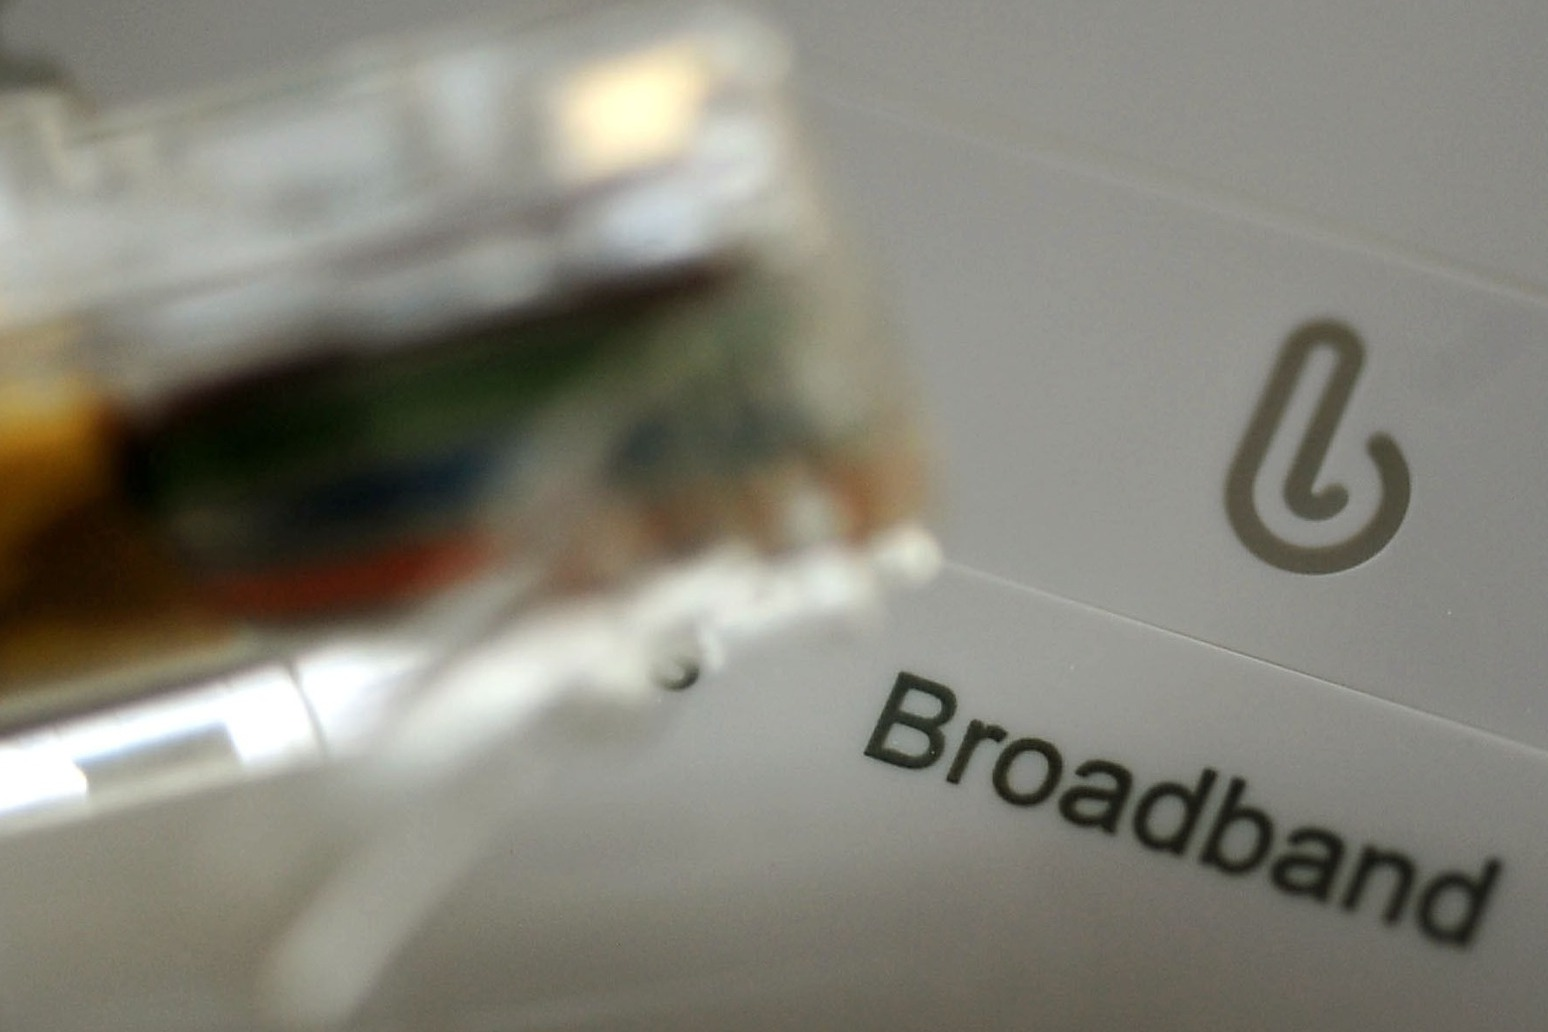 ONE CALL TO BROADBAND PROVIDER \'COULD LEAD TO £120 SAVING